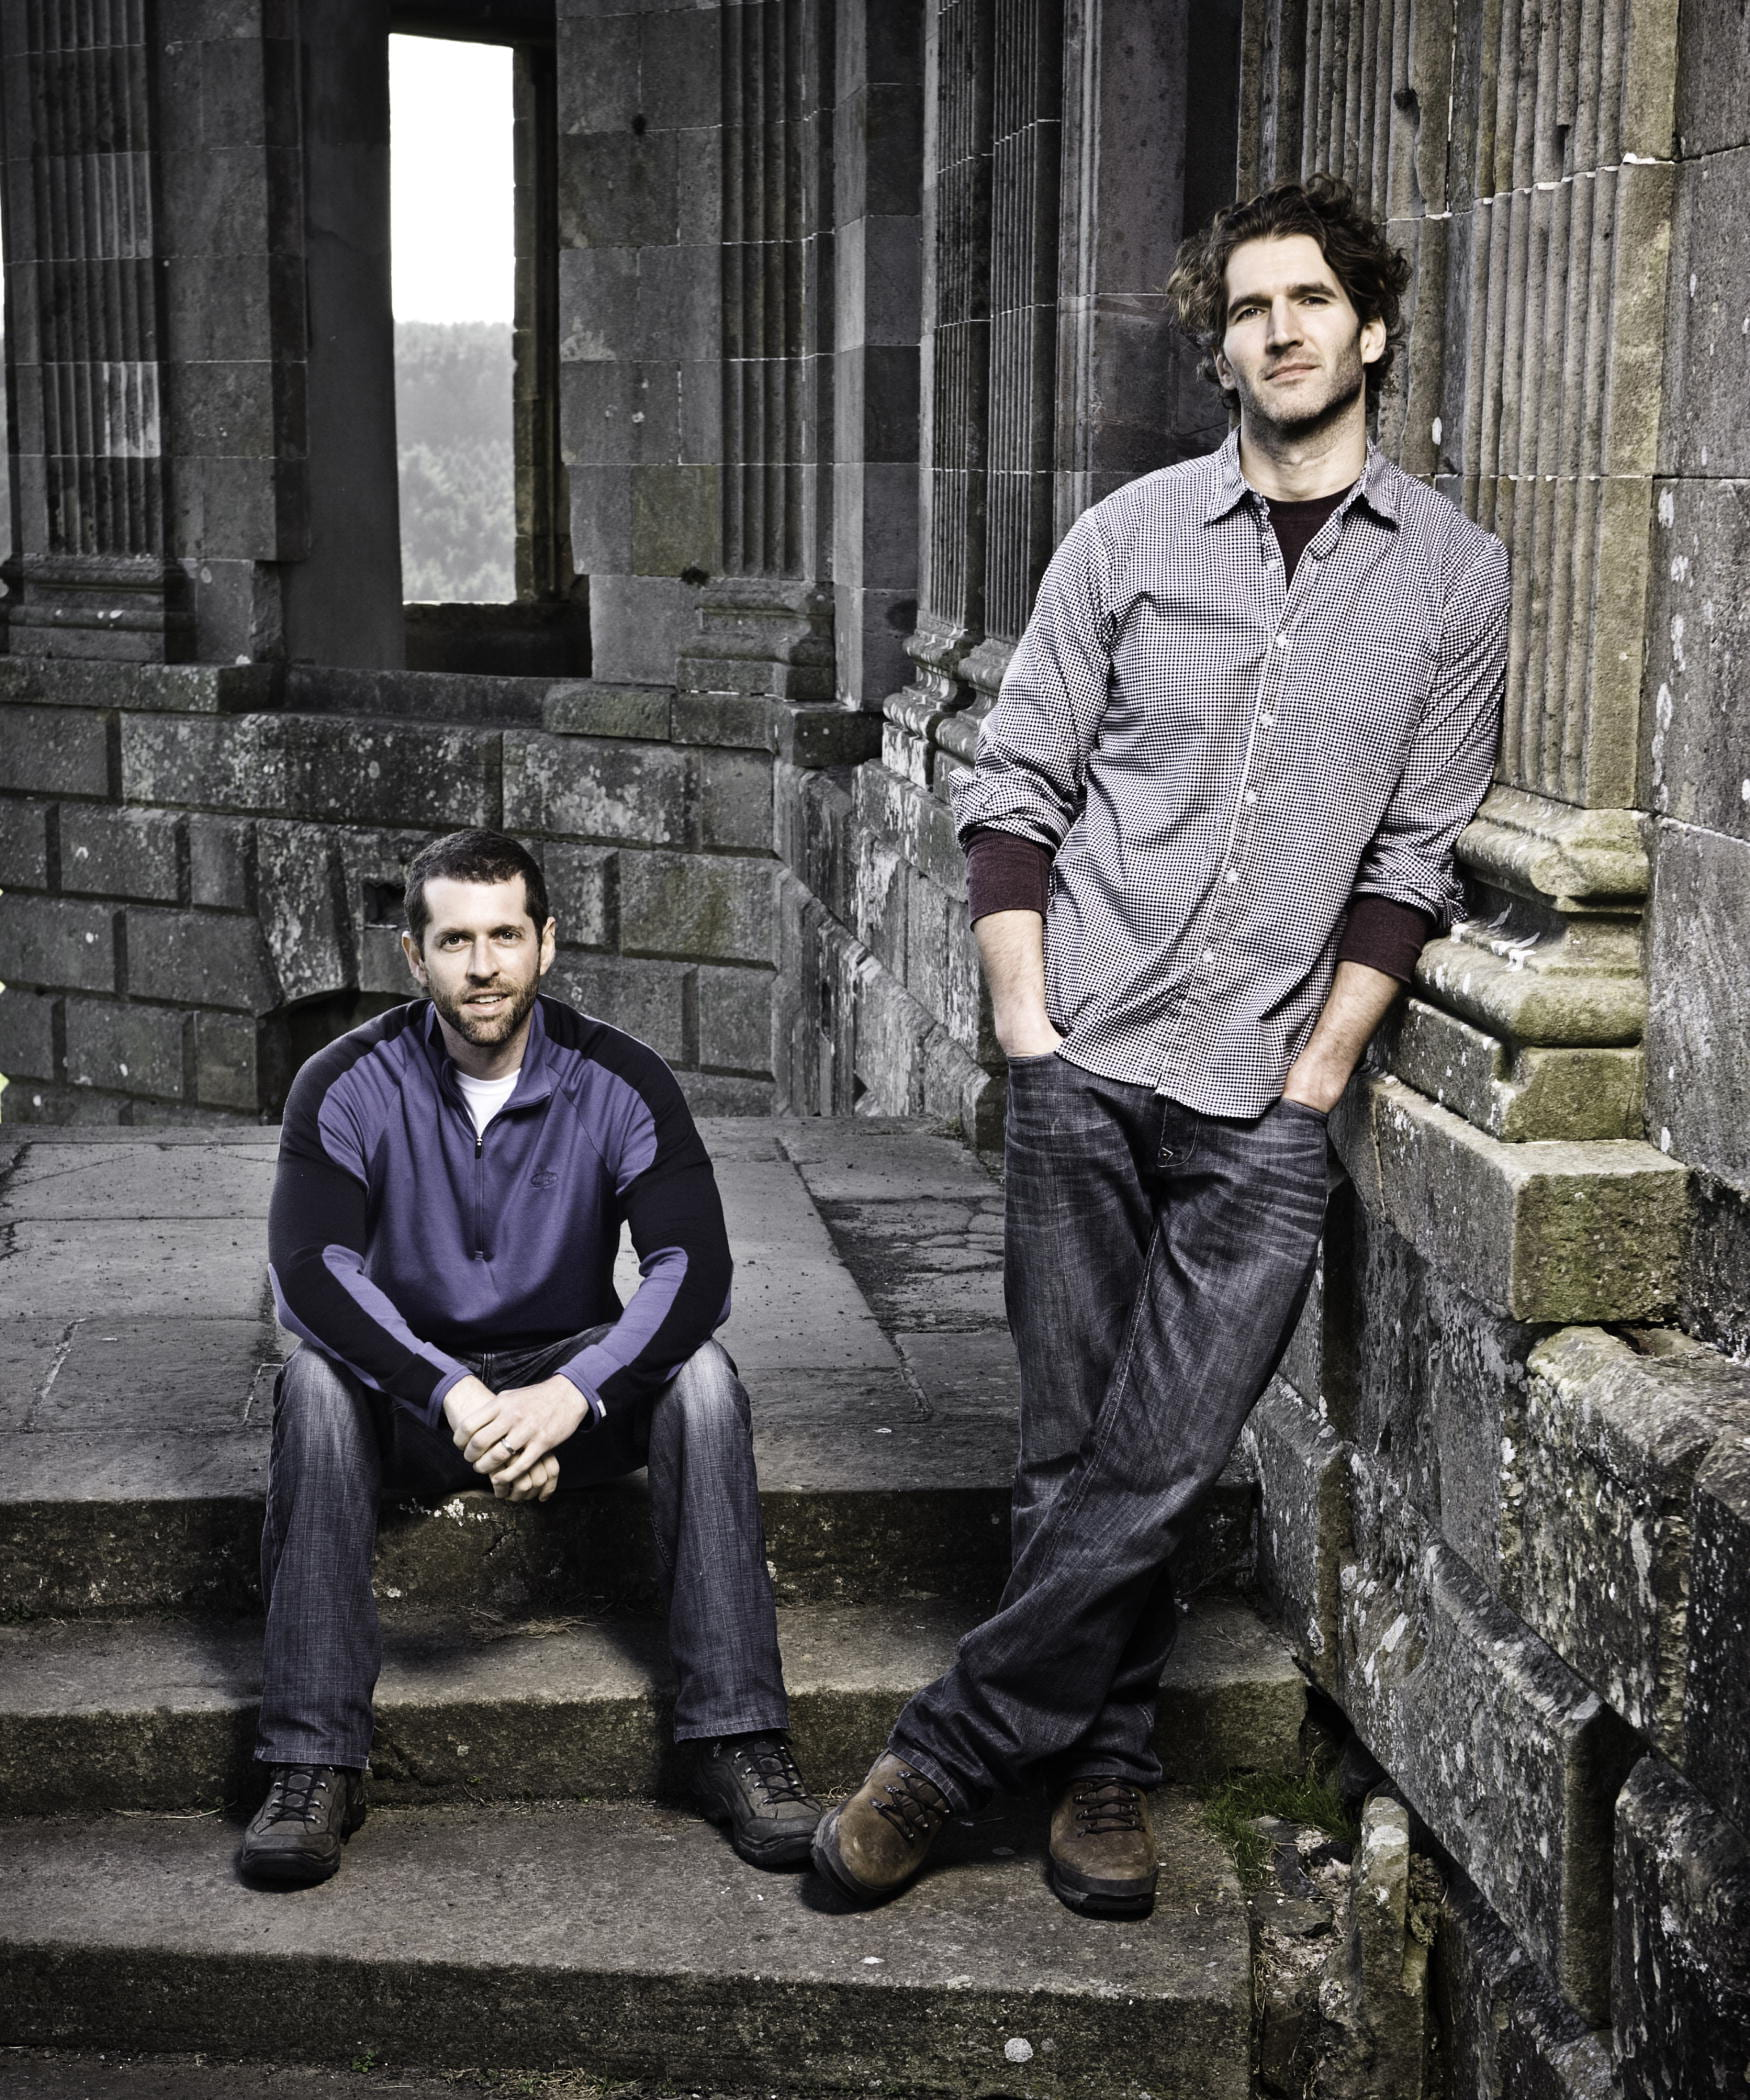 David Benioff (right) and D.B. Weiss